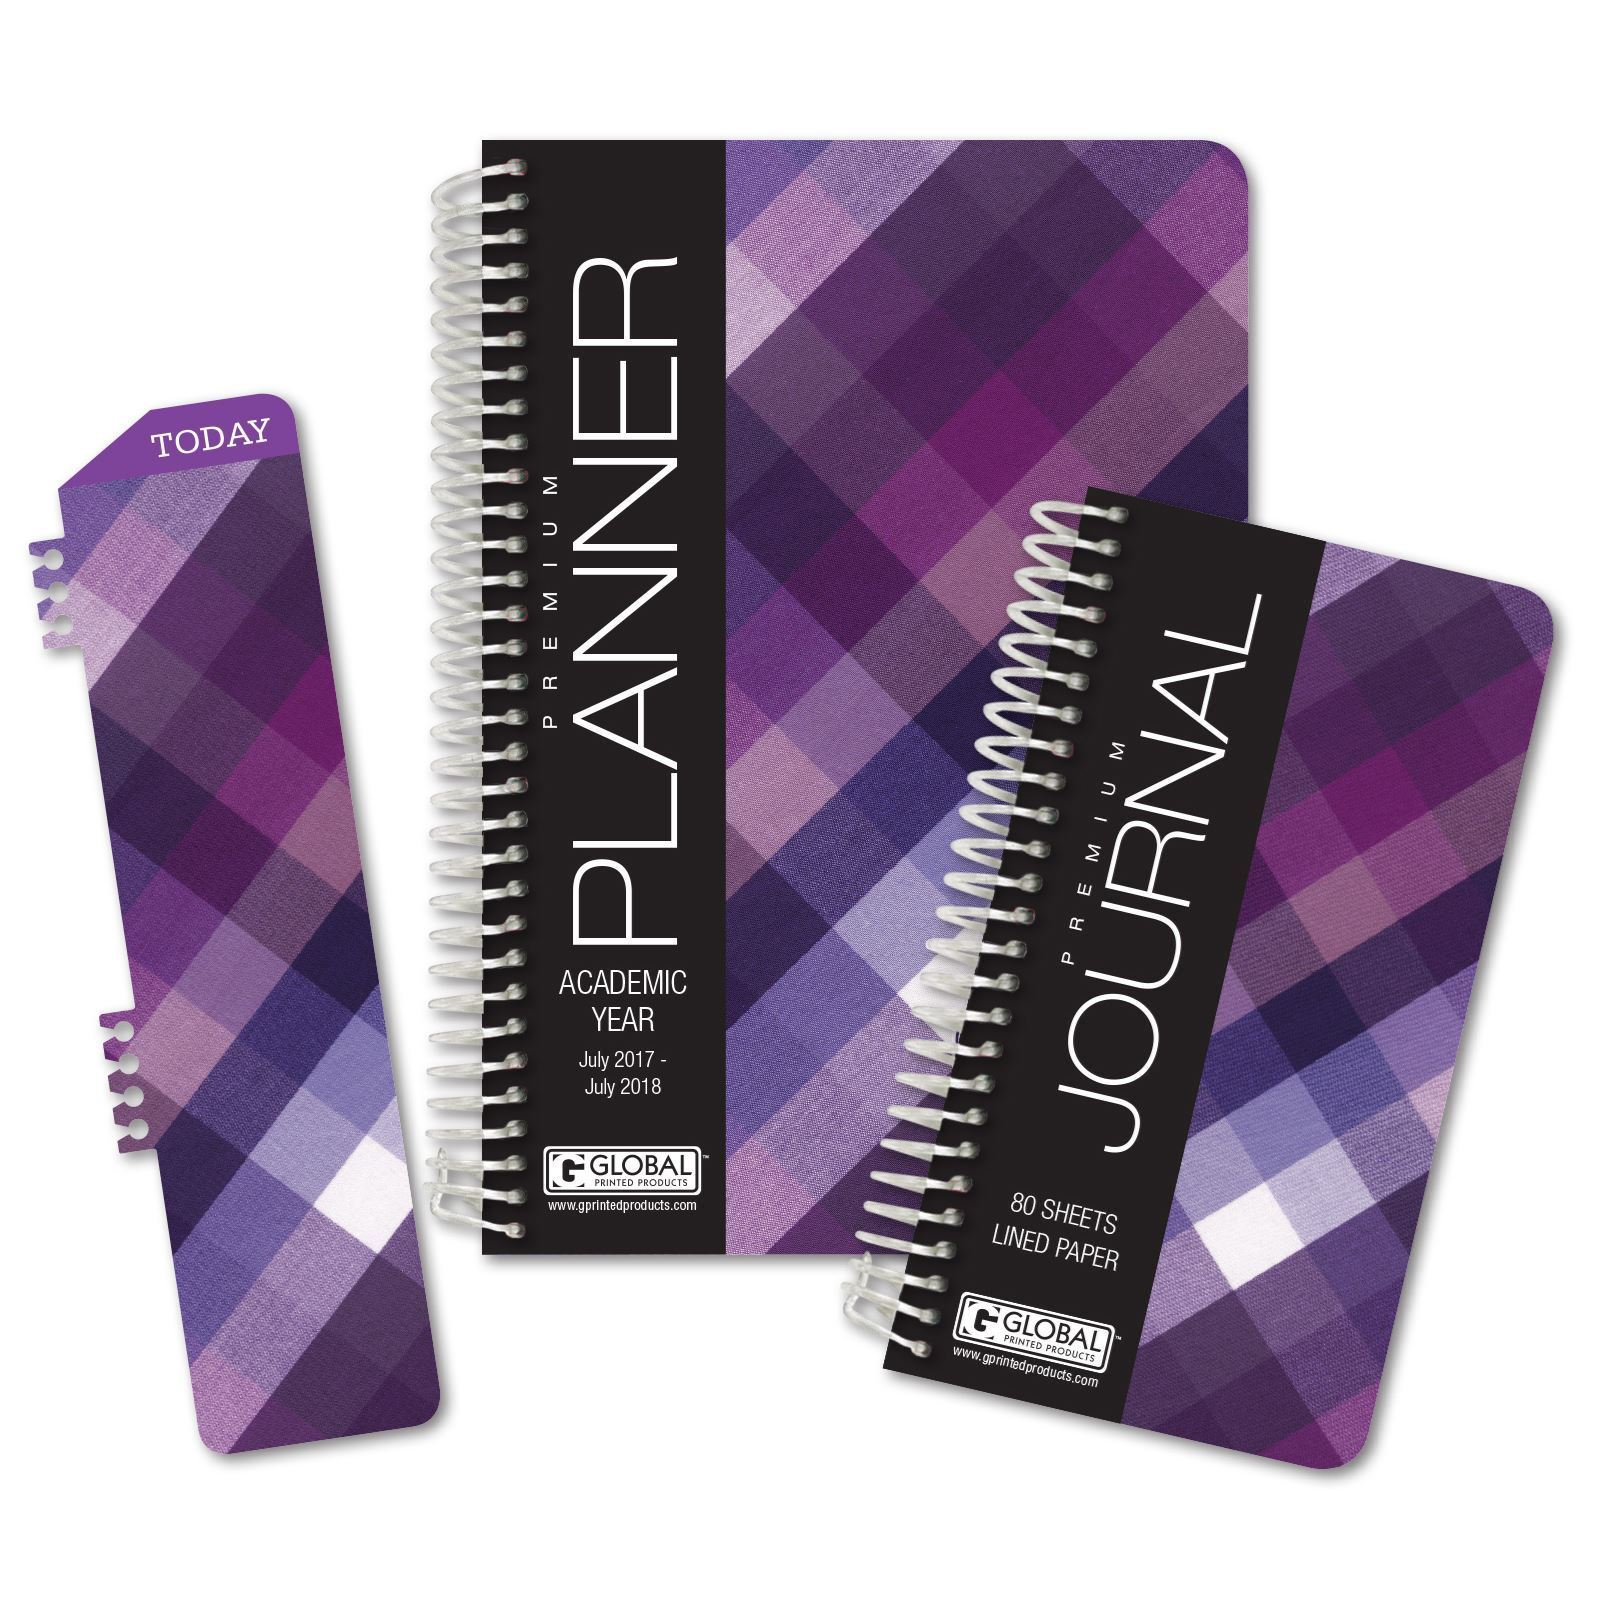 Picture of Academic Year Fashion Planner Daily Set (Purple Plaid Pattern)